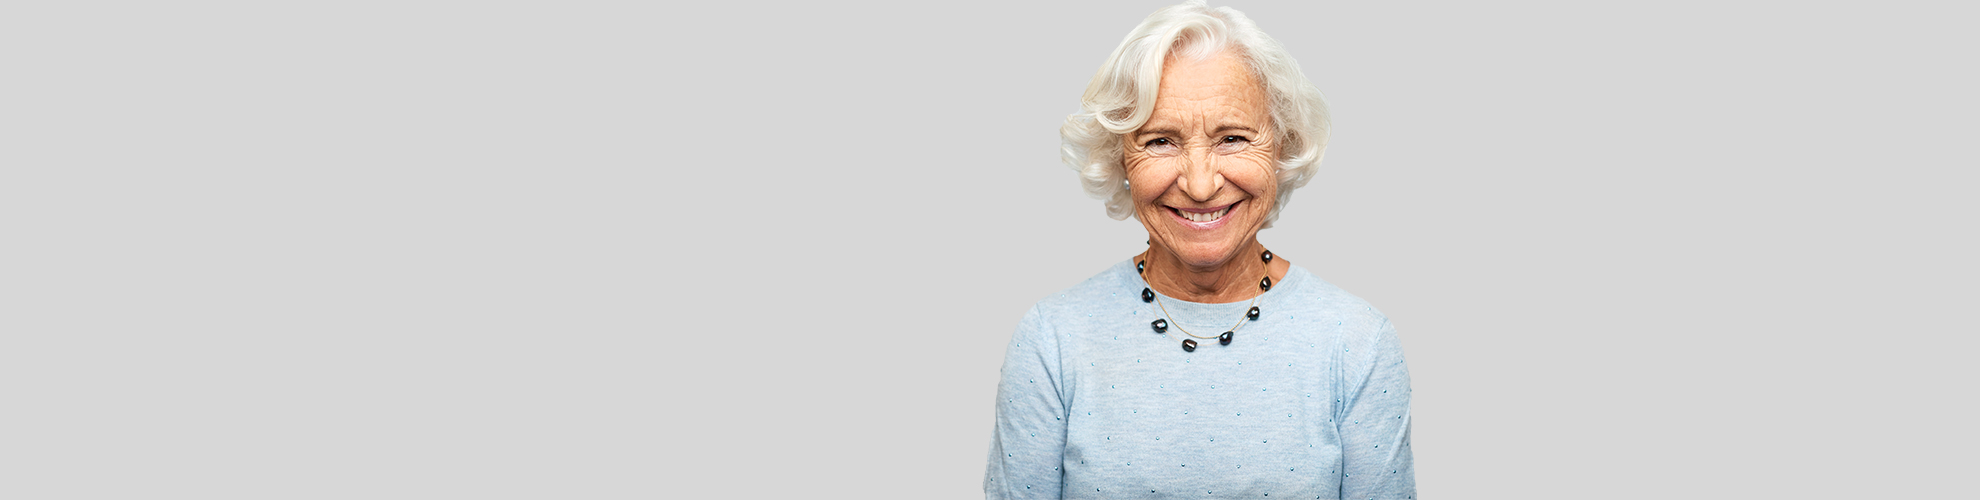 Elderly woman smiling from lowered risk of heart disease